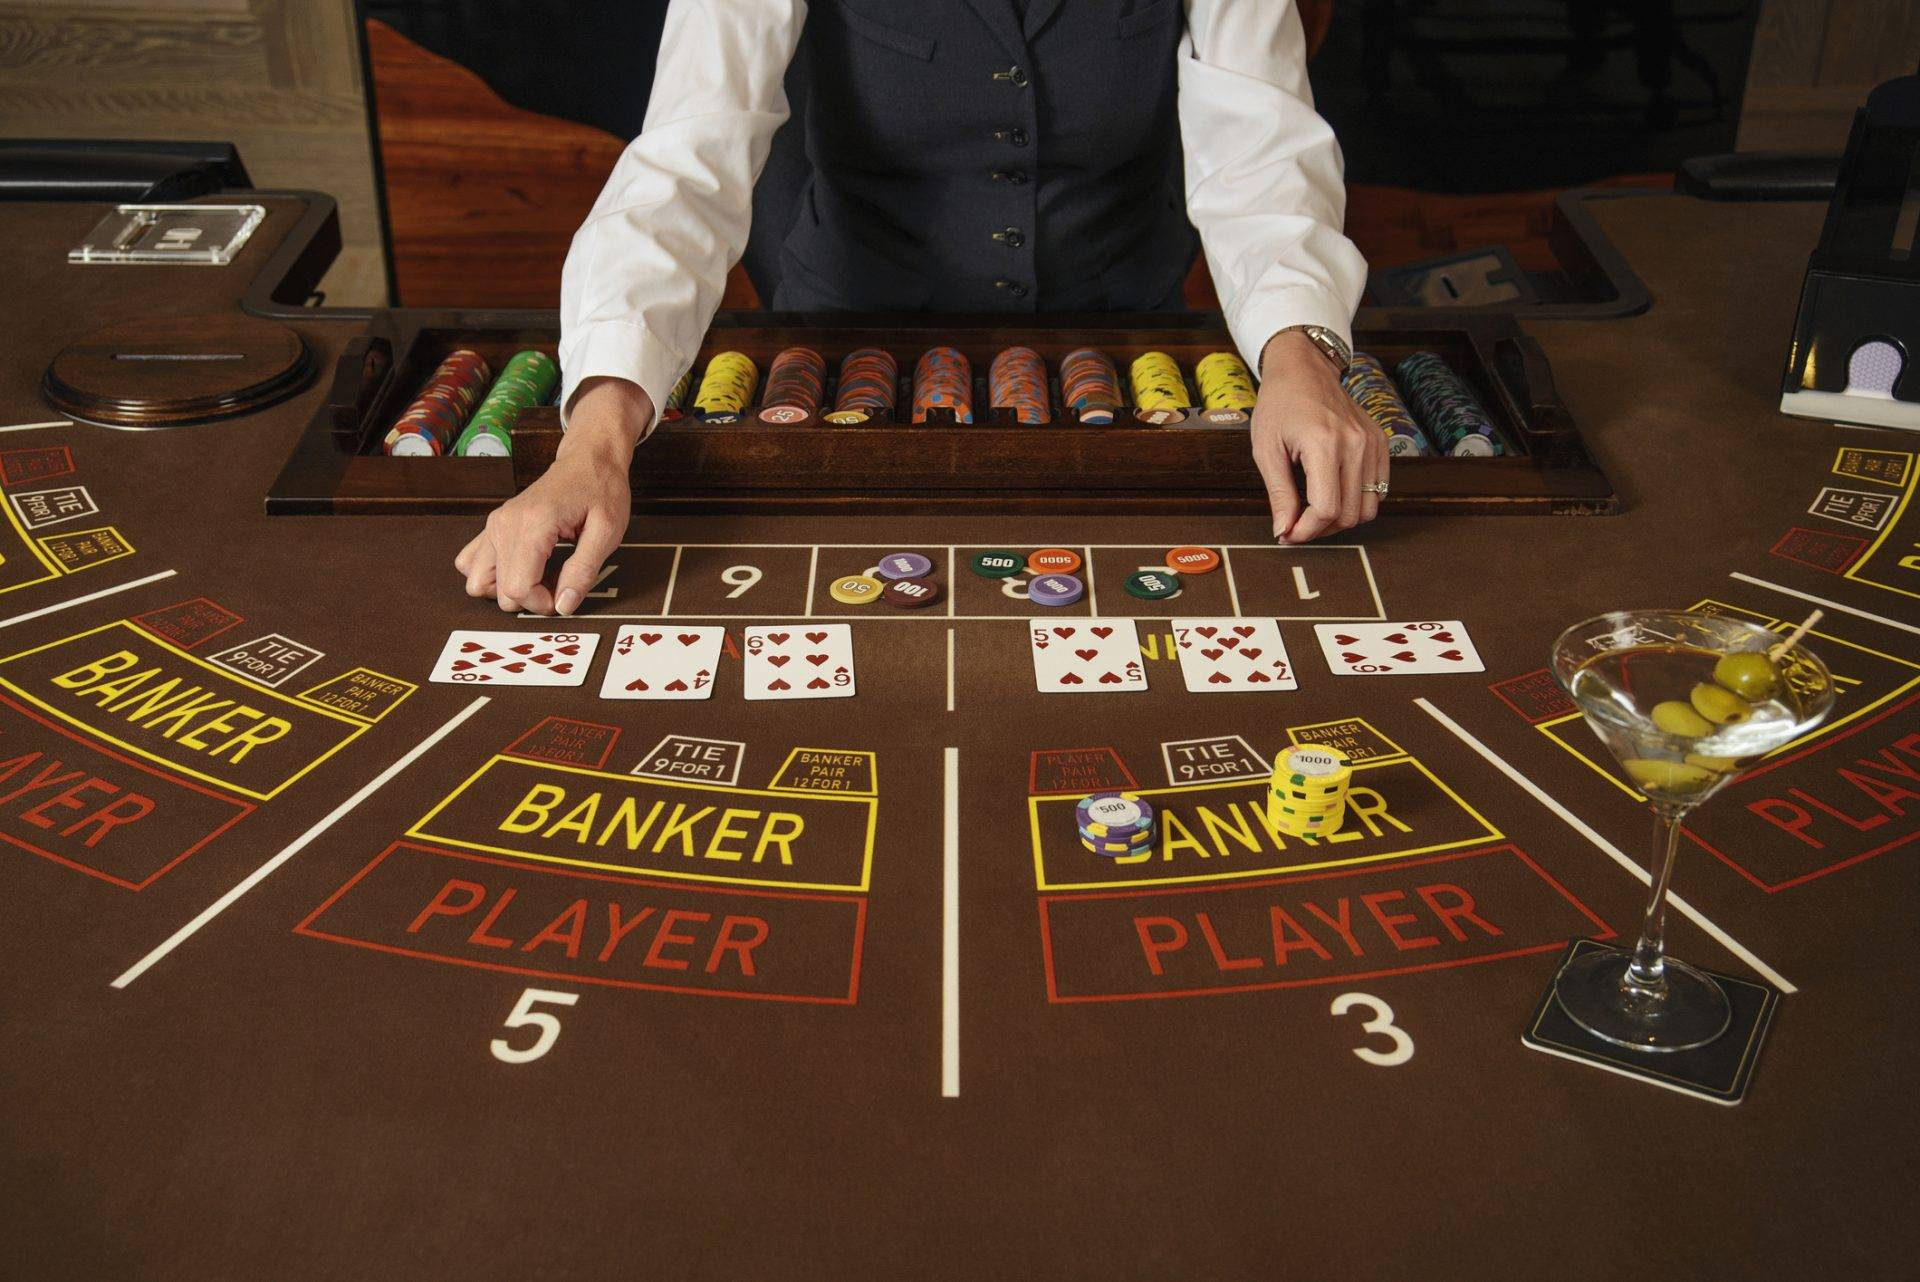 With the tutorial videos, you will win money in Baccarat online